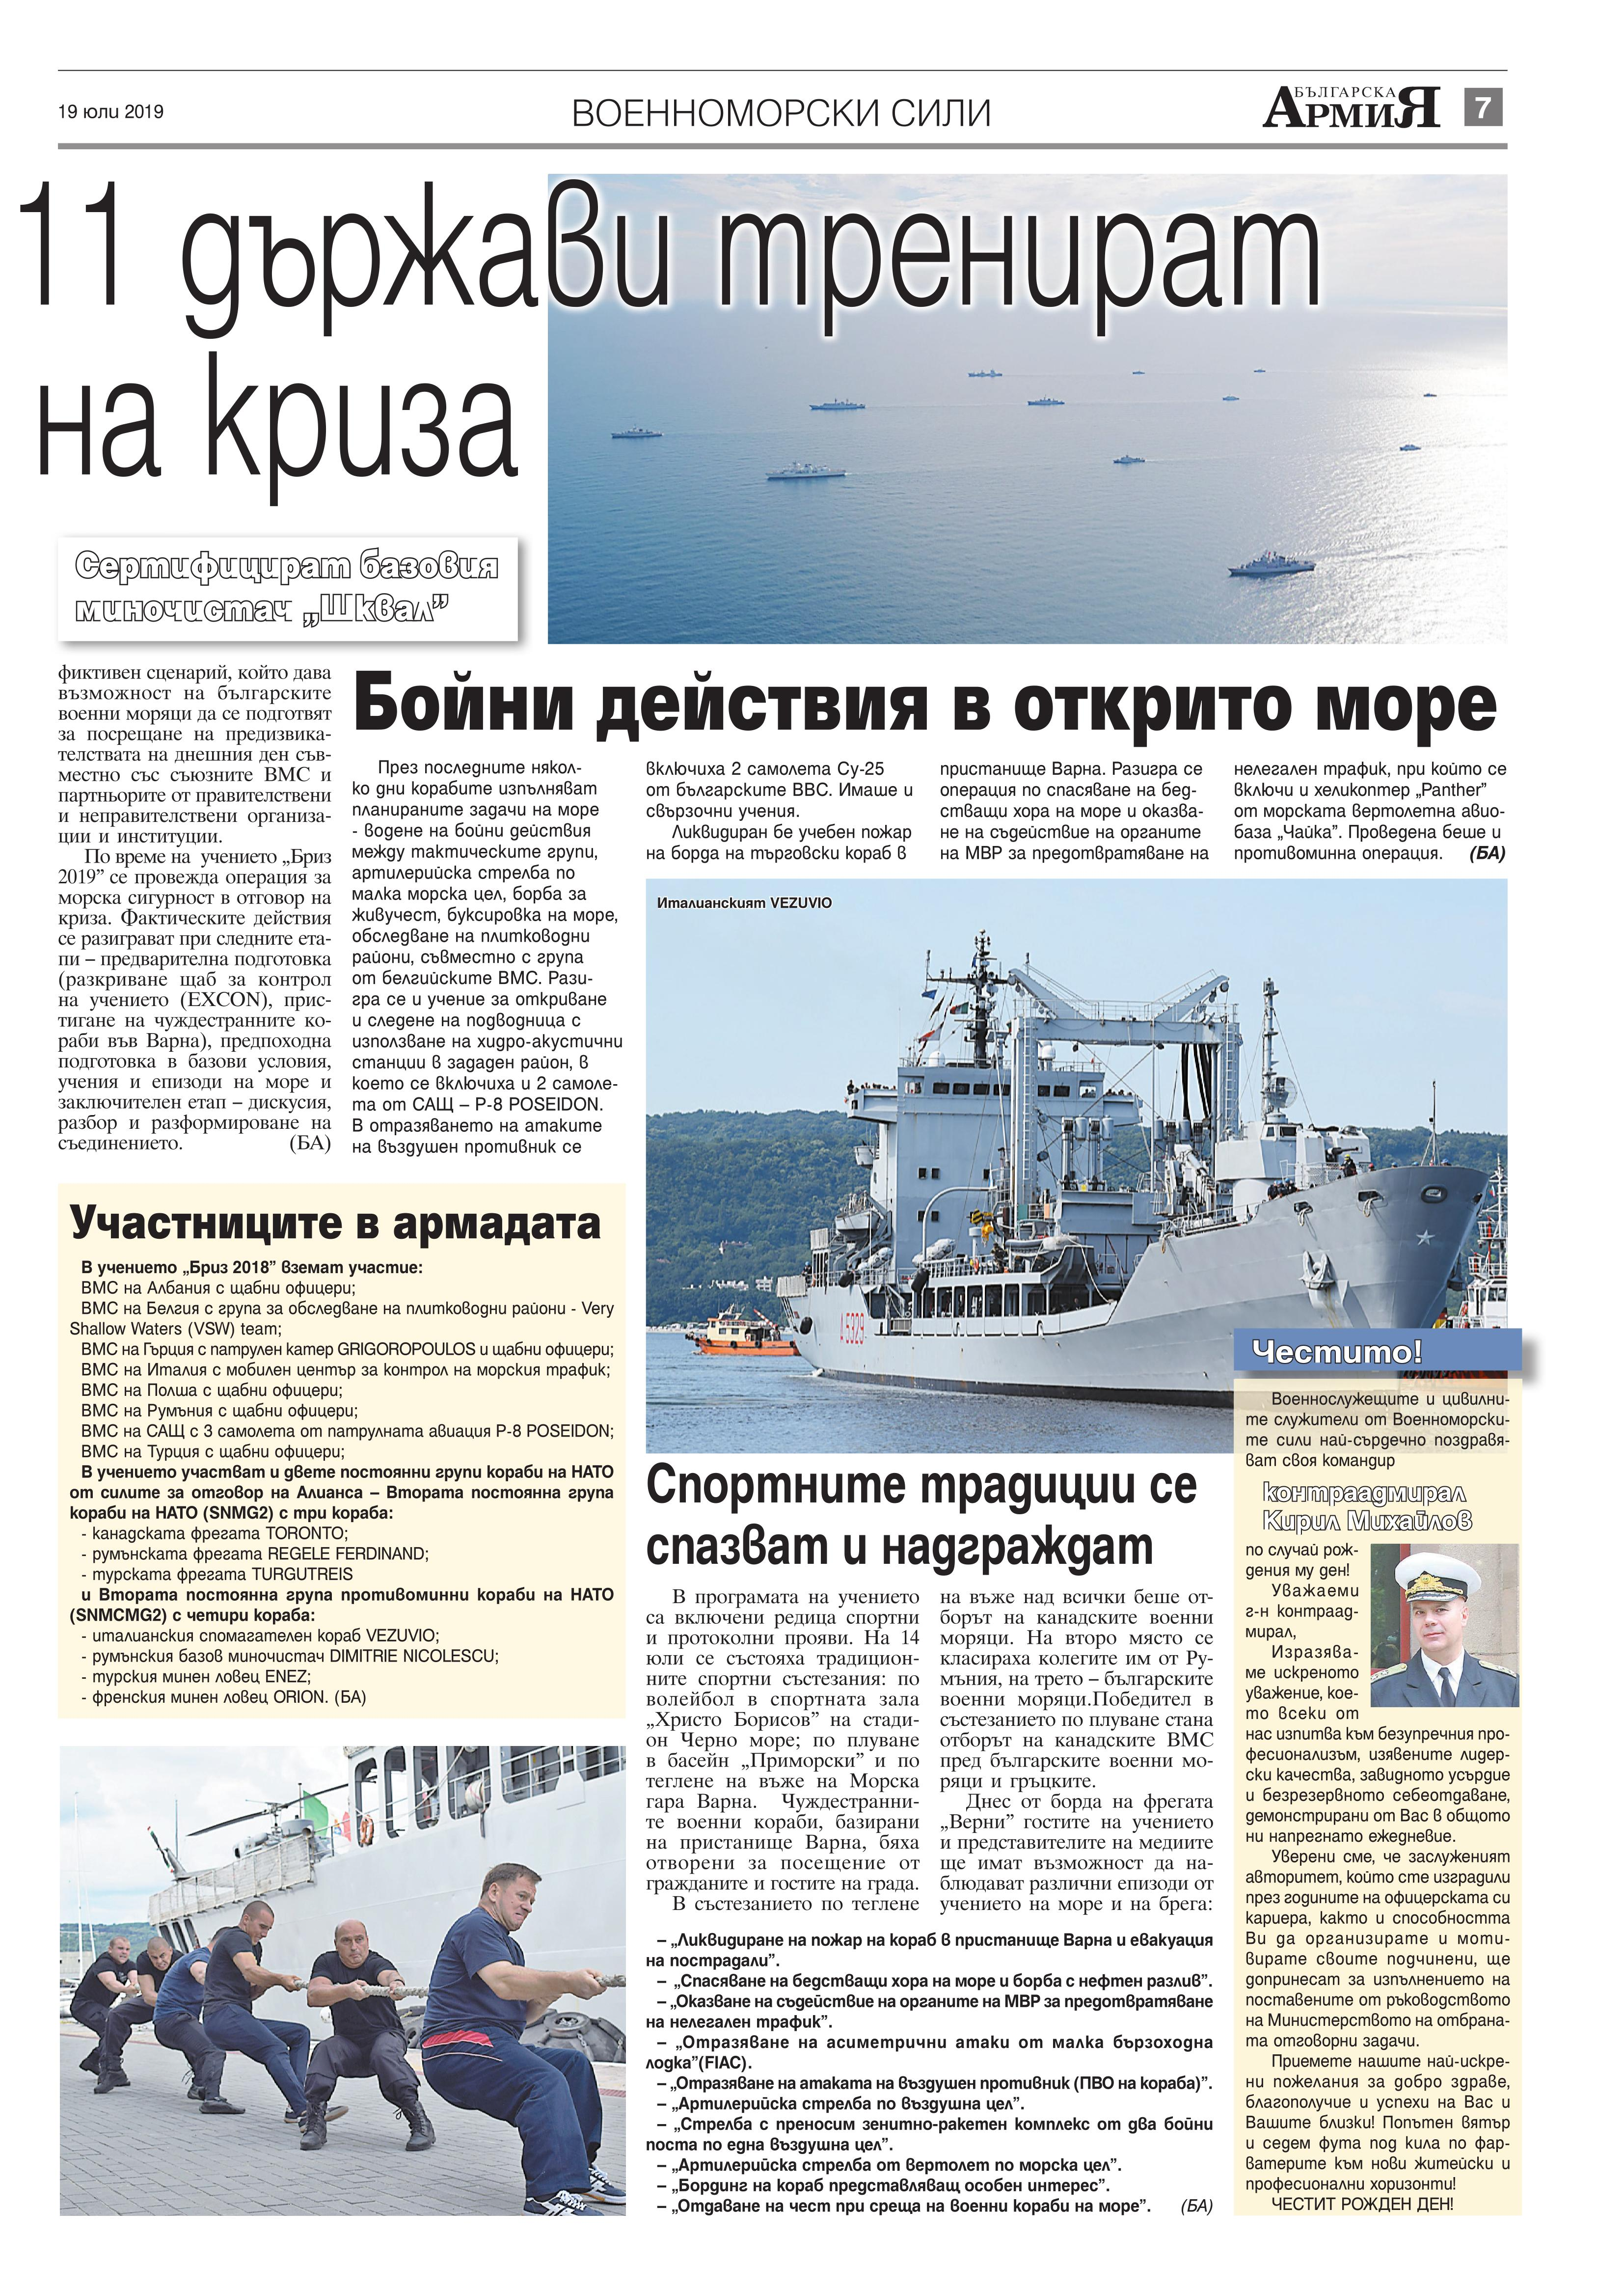 https://armymedia.bg/wp-content/uploads/2015/06/07.page1_-100.jpg